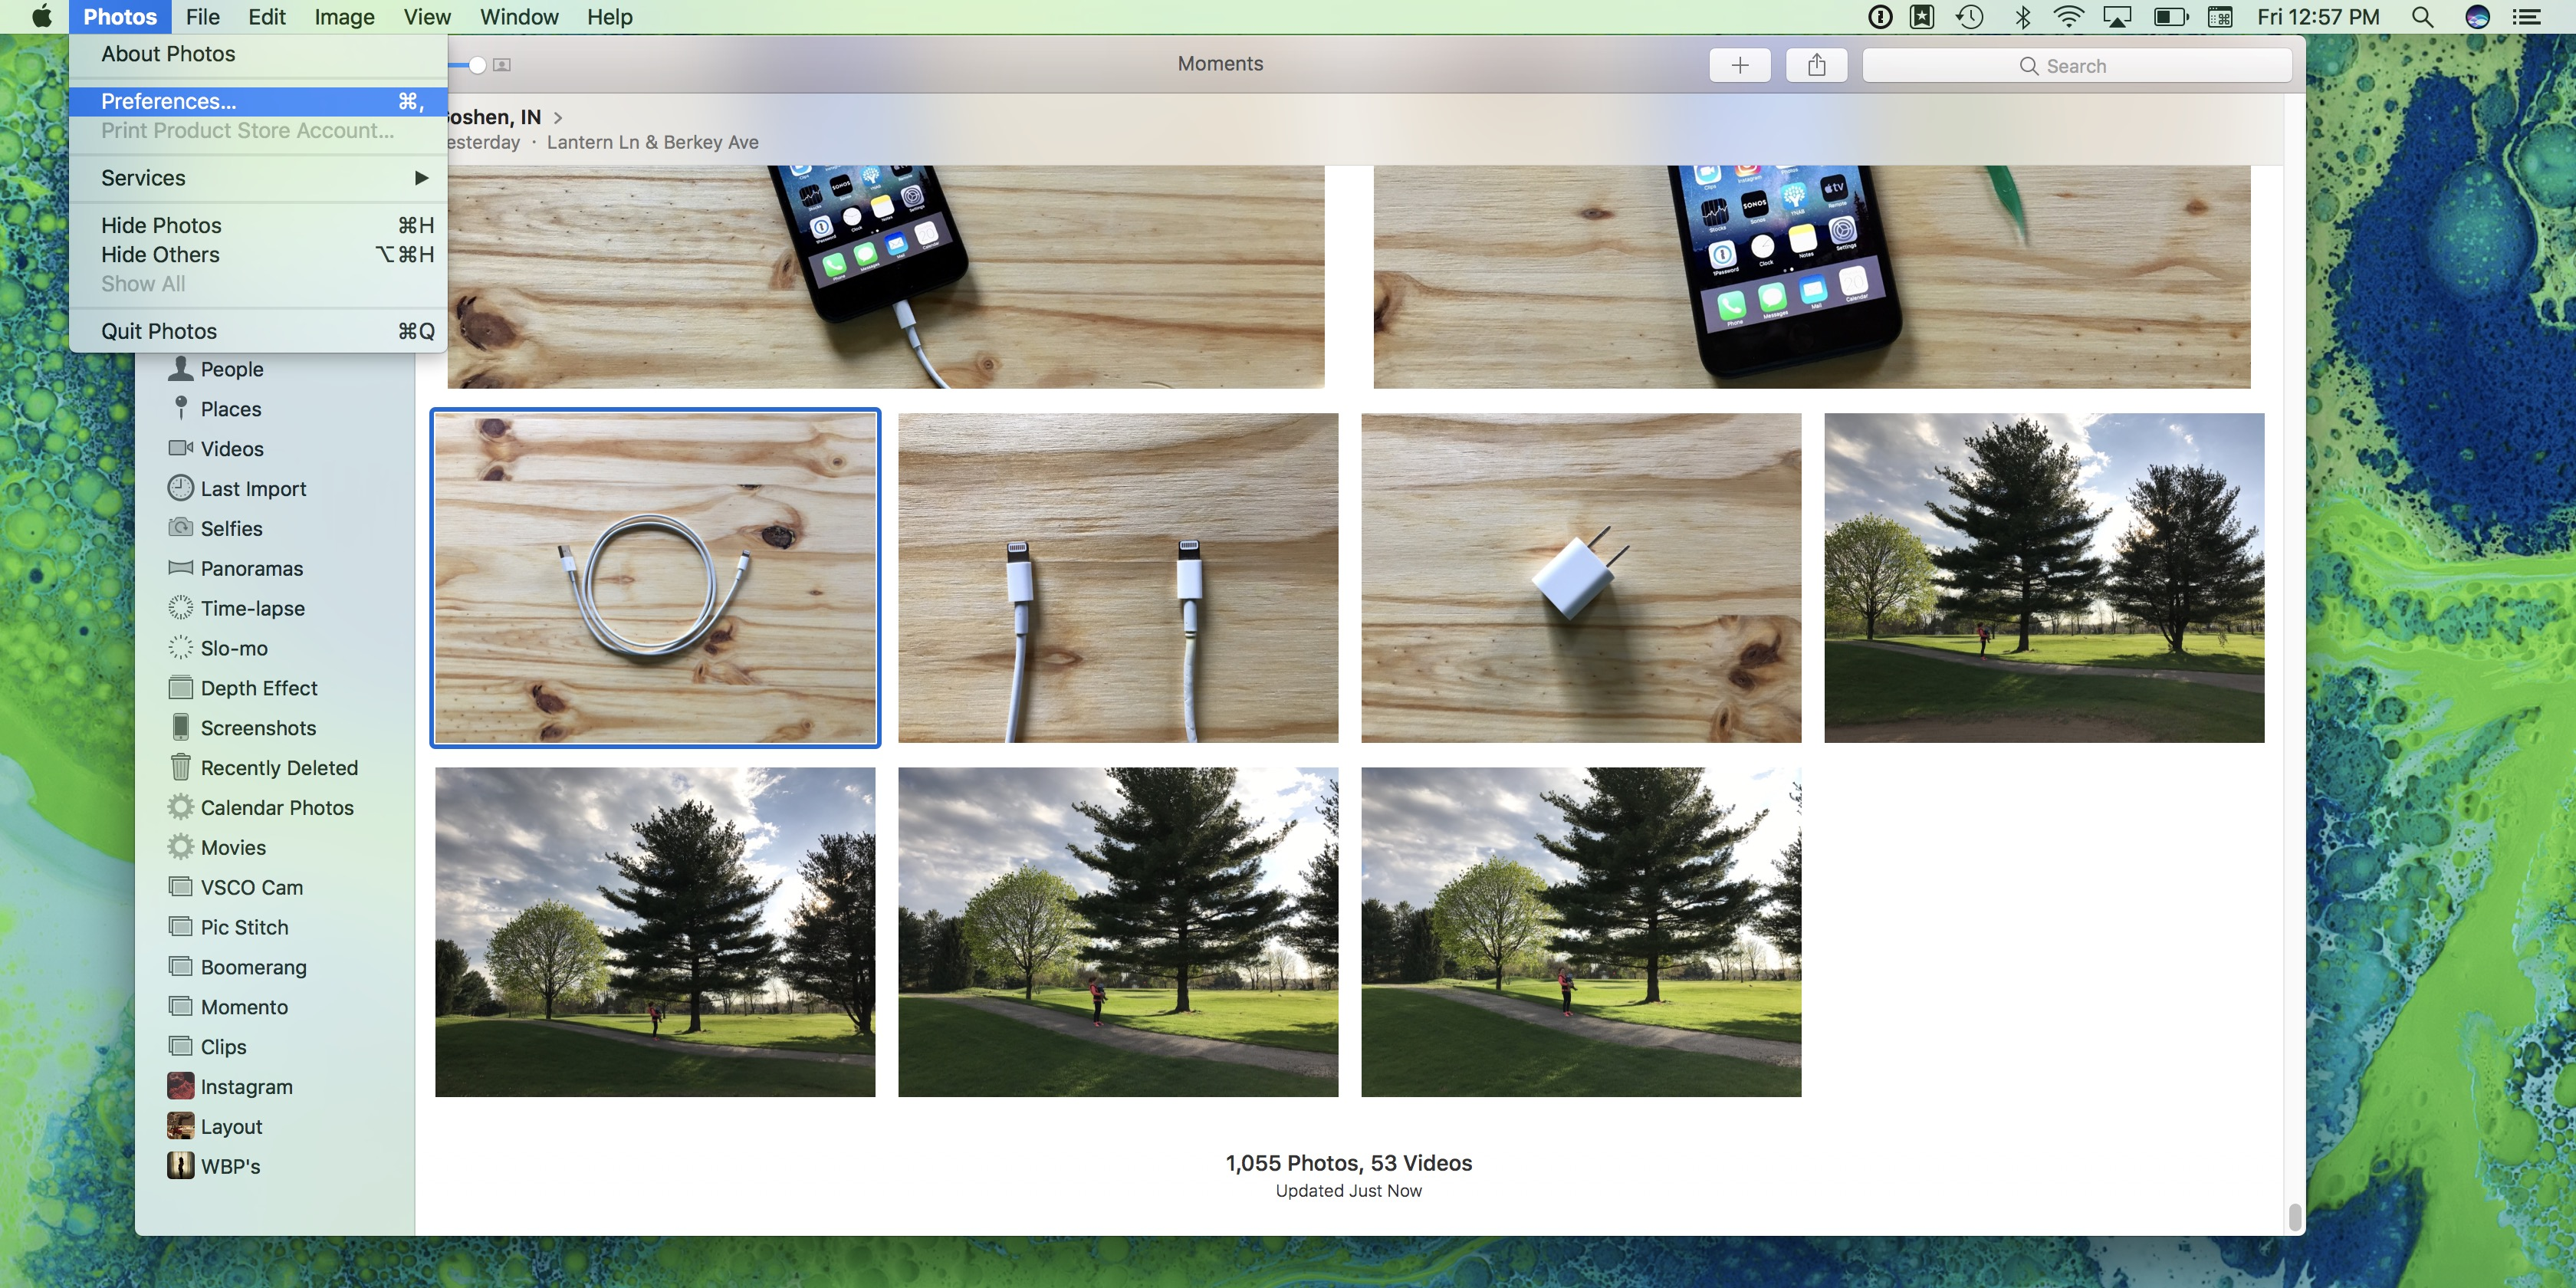 Image of macOS showing the Photos application